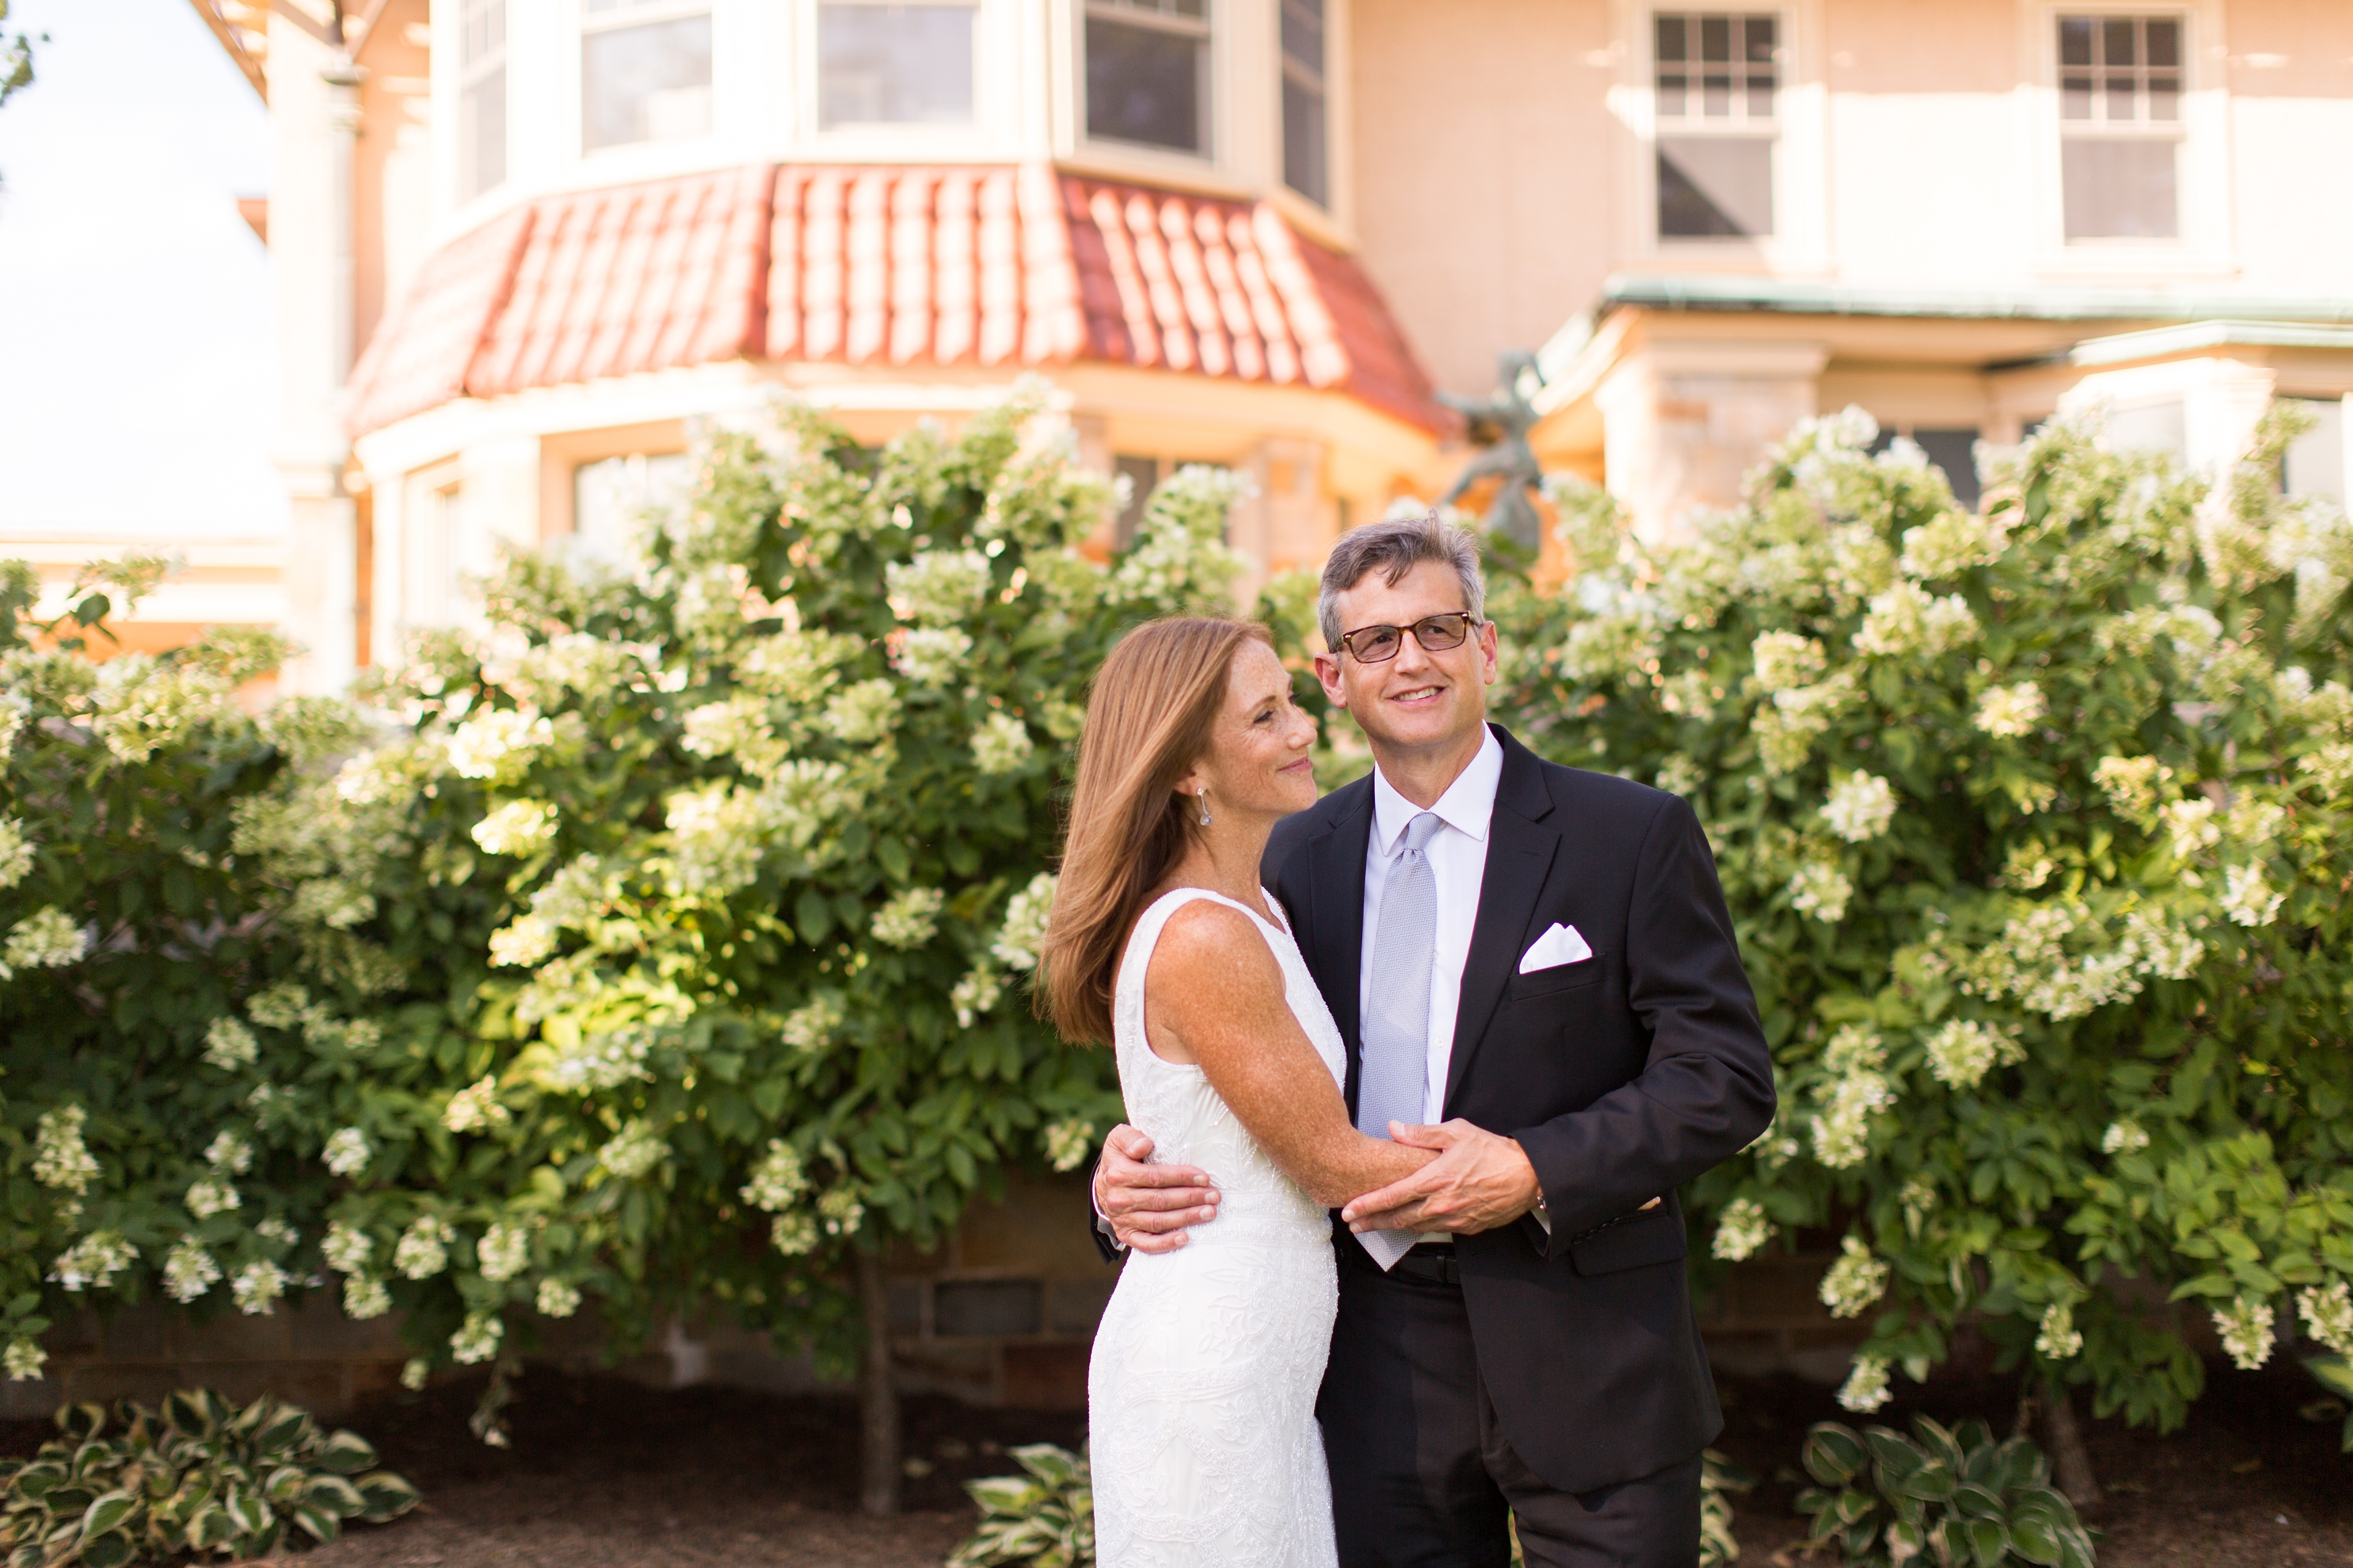 allegra_anderson_photography_connecticut_wedding_photographer_new_britain_museum_art_seymour_2016114